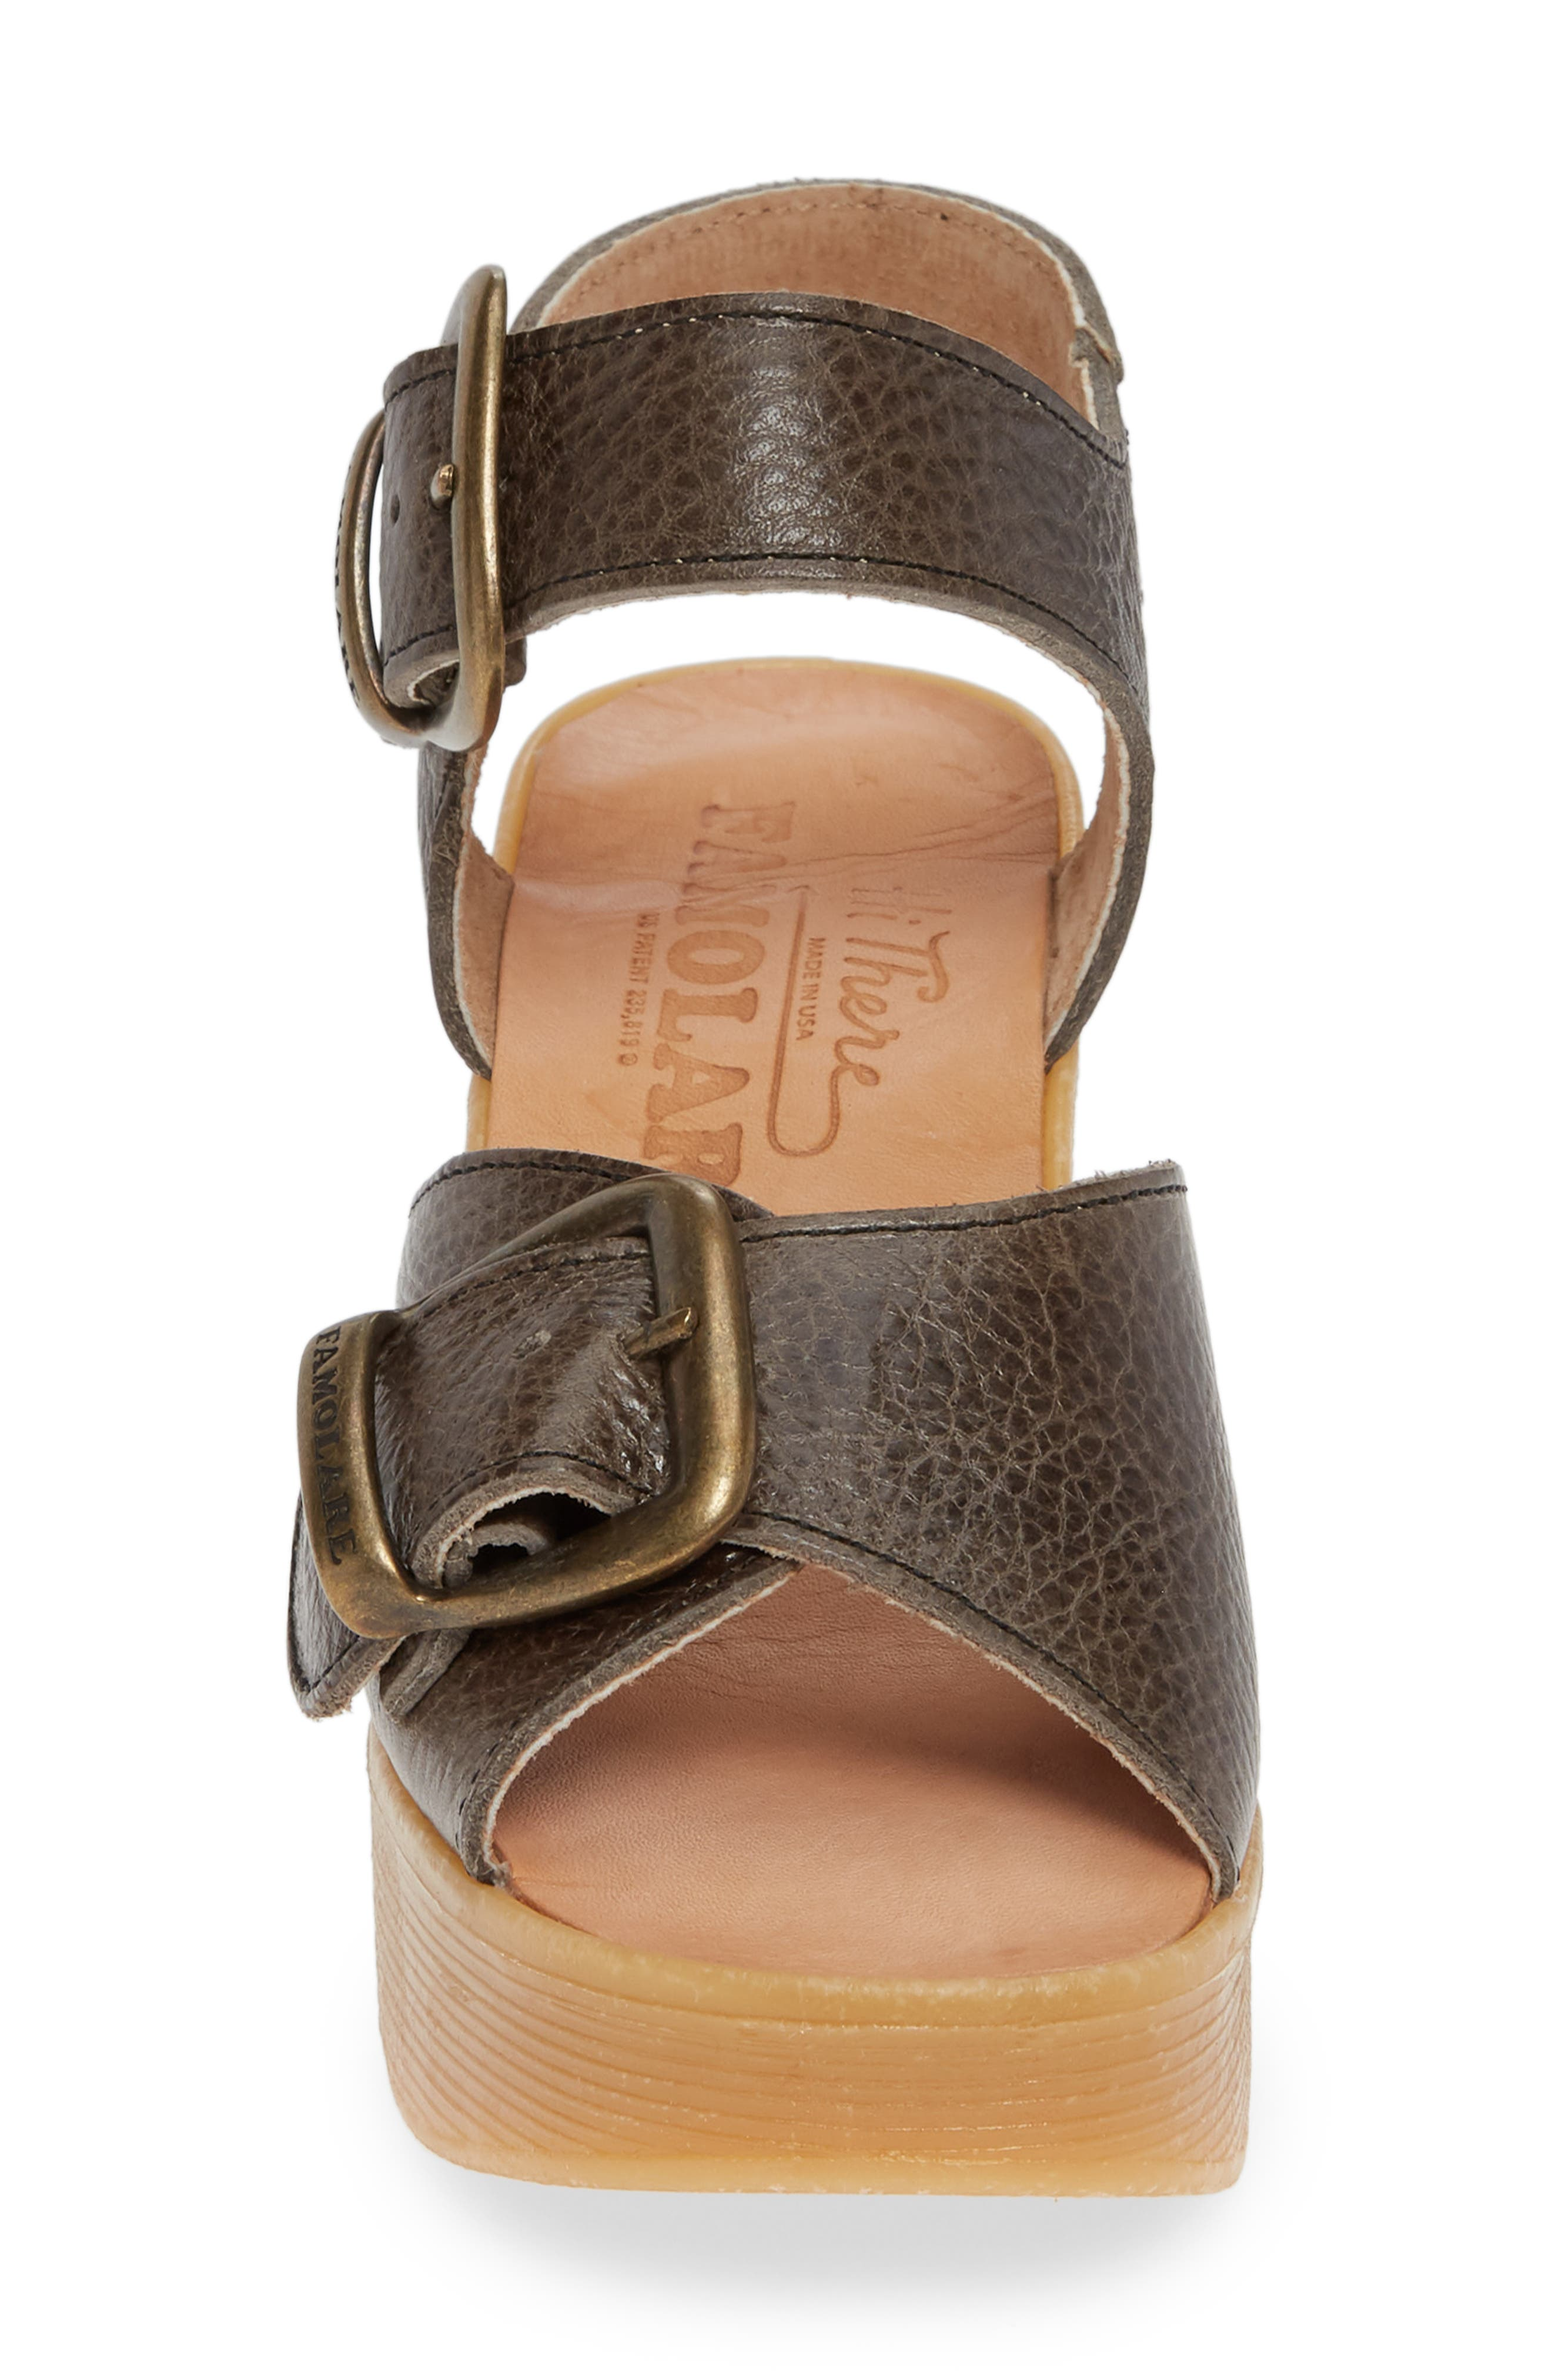 Double Vision Wedge Sandal,                             Alternate thumbnail 4, color,                             STEEL LEATHER